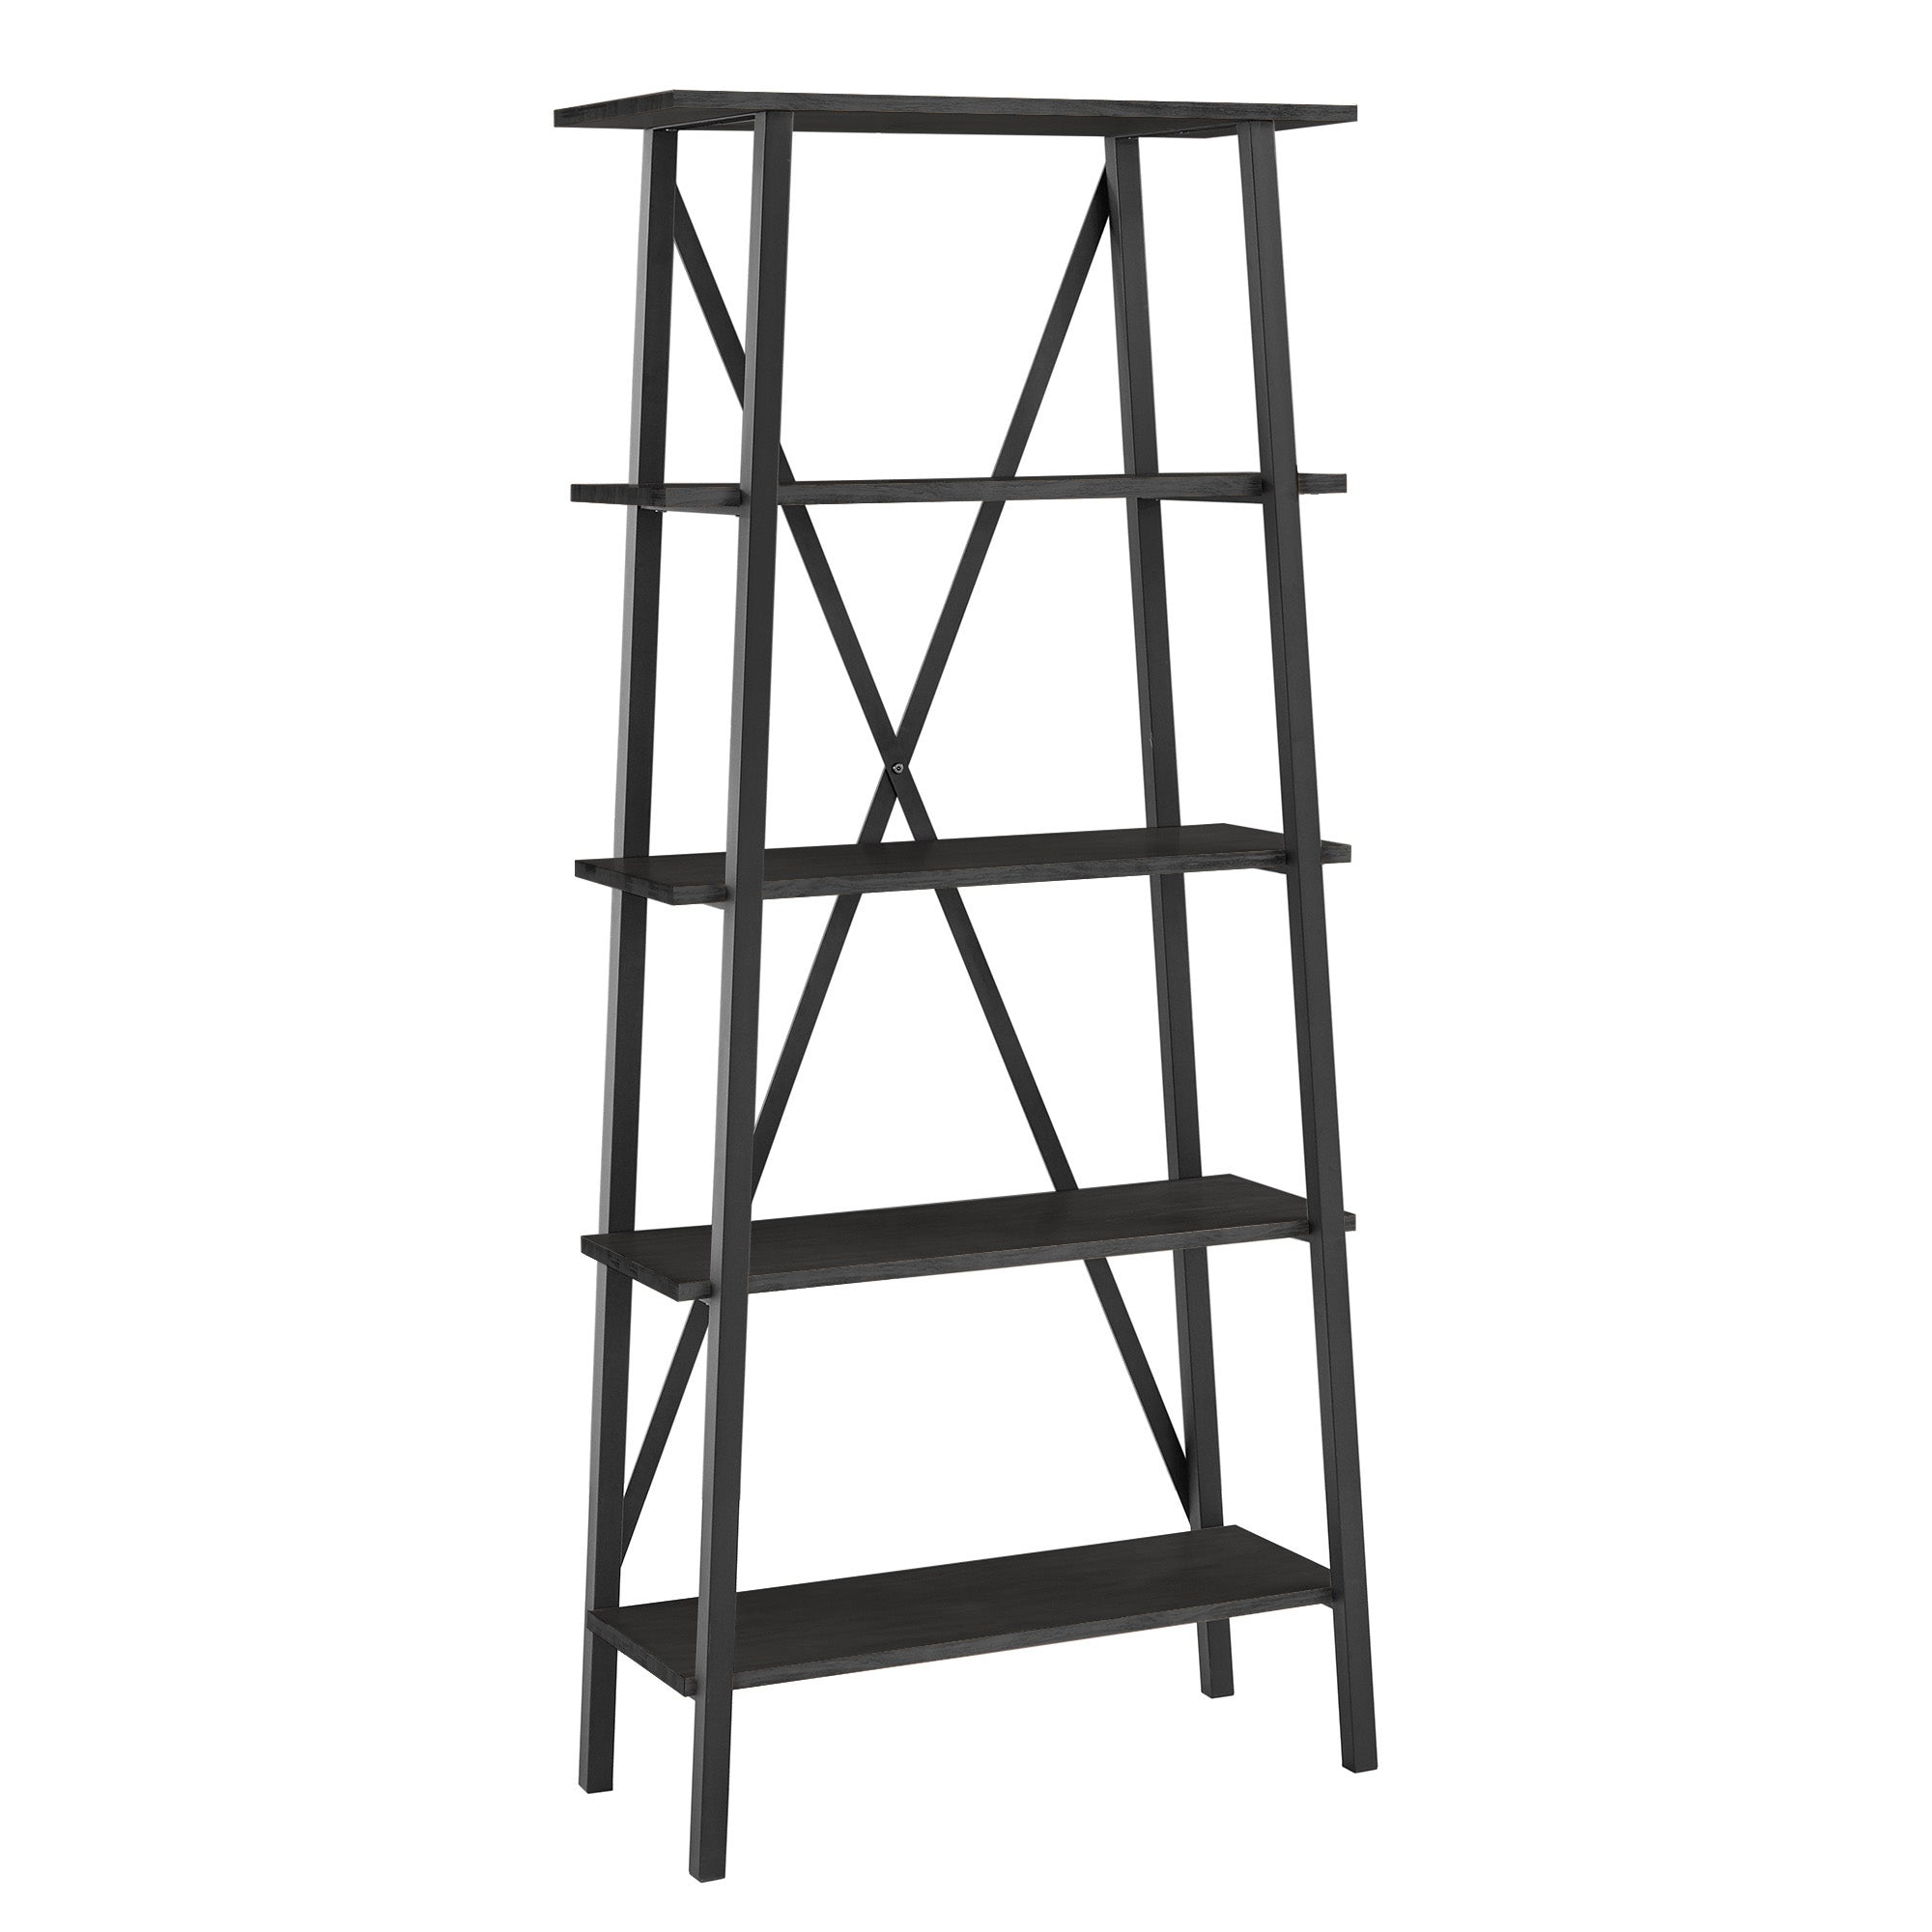 Rustic X-Base 32-inch Bookcase - Black Finish